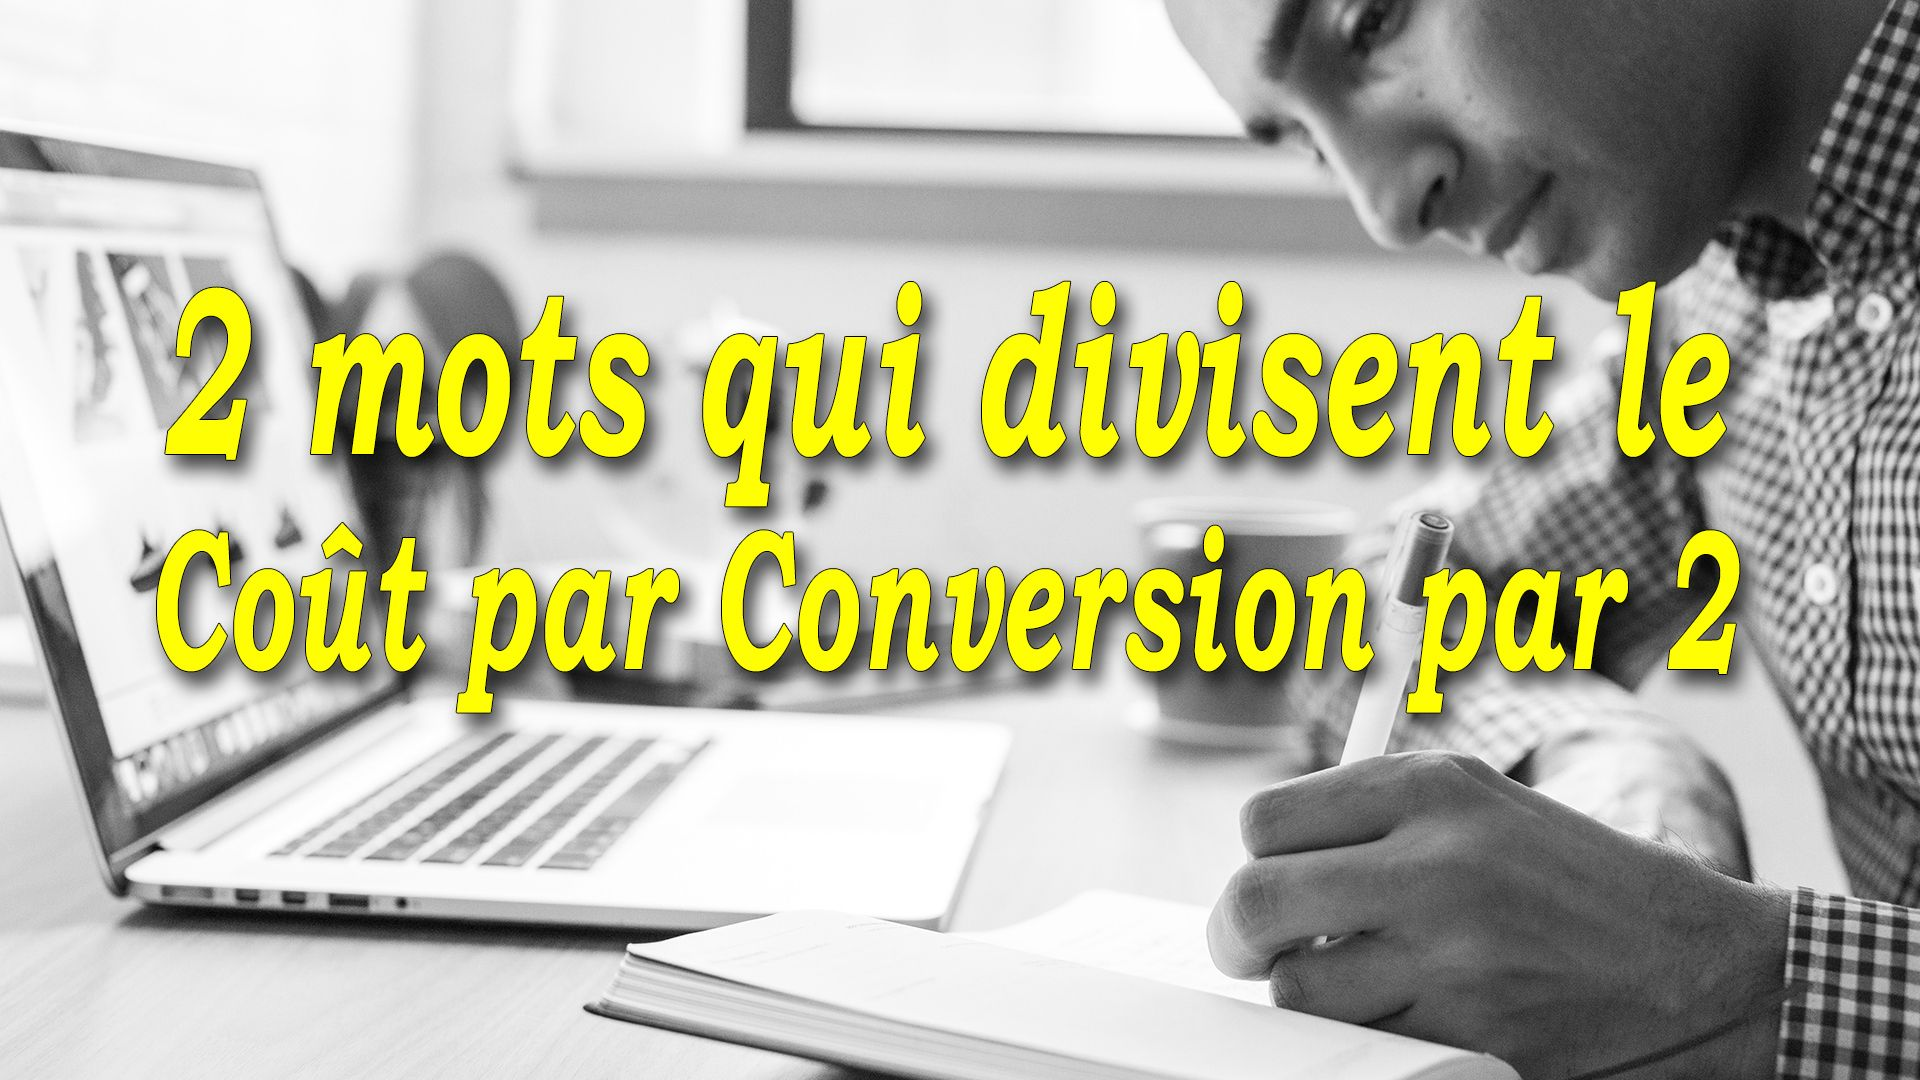 2 mots qui divisent le Coût par Conversion par 2 #GrowthHacking #WebMarketing #FormationGrowthHacking #CentreDeFormationFrance #TunnelAARRR #AARRR #SocialMedia #CommunityManagement #SEO #copywriting